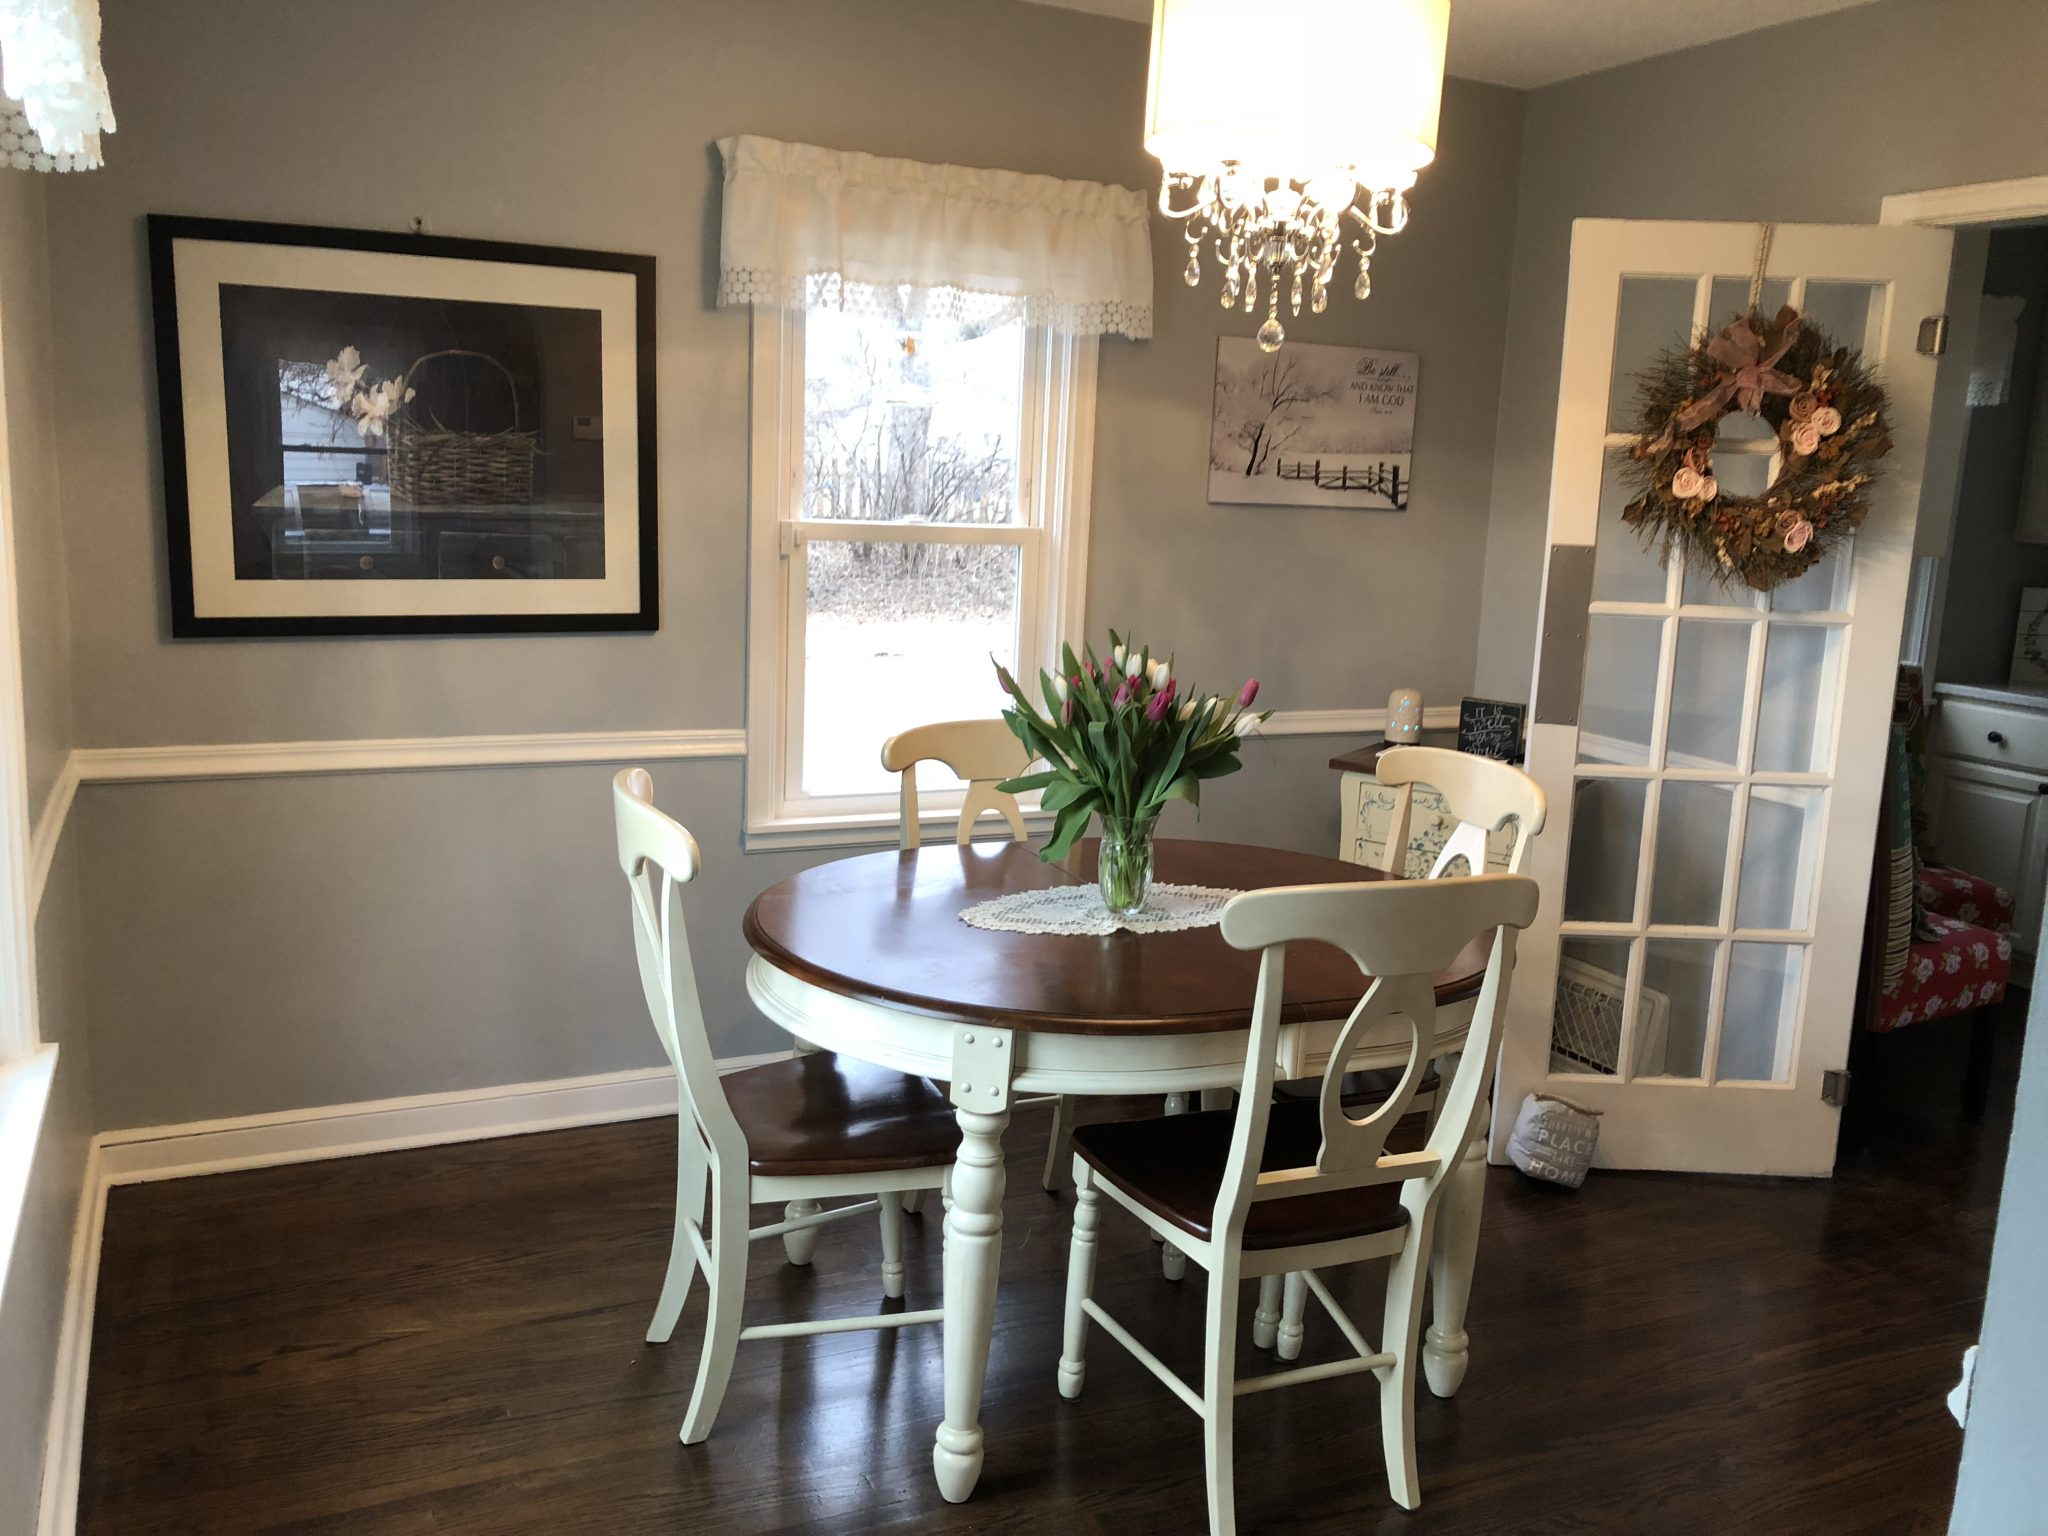 Interior of dining room painted